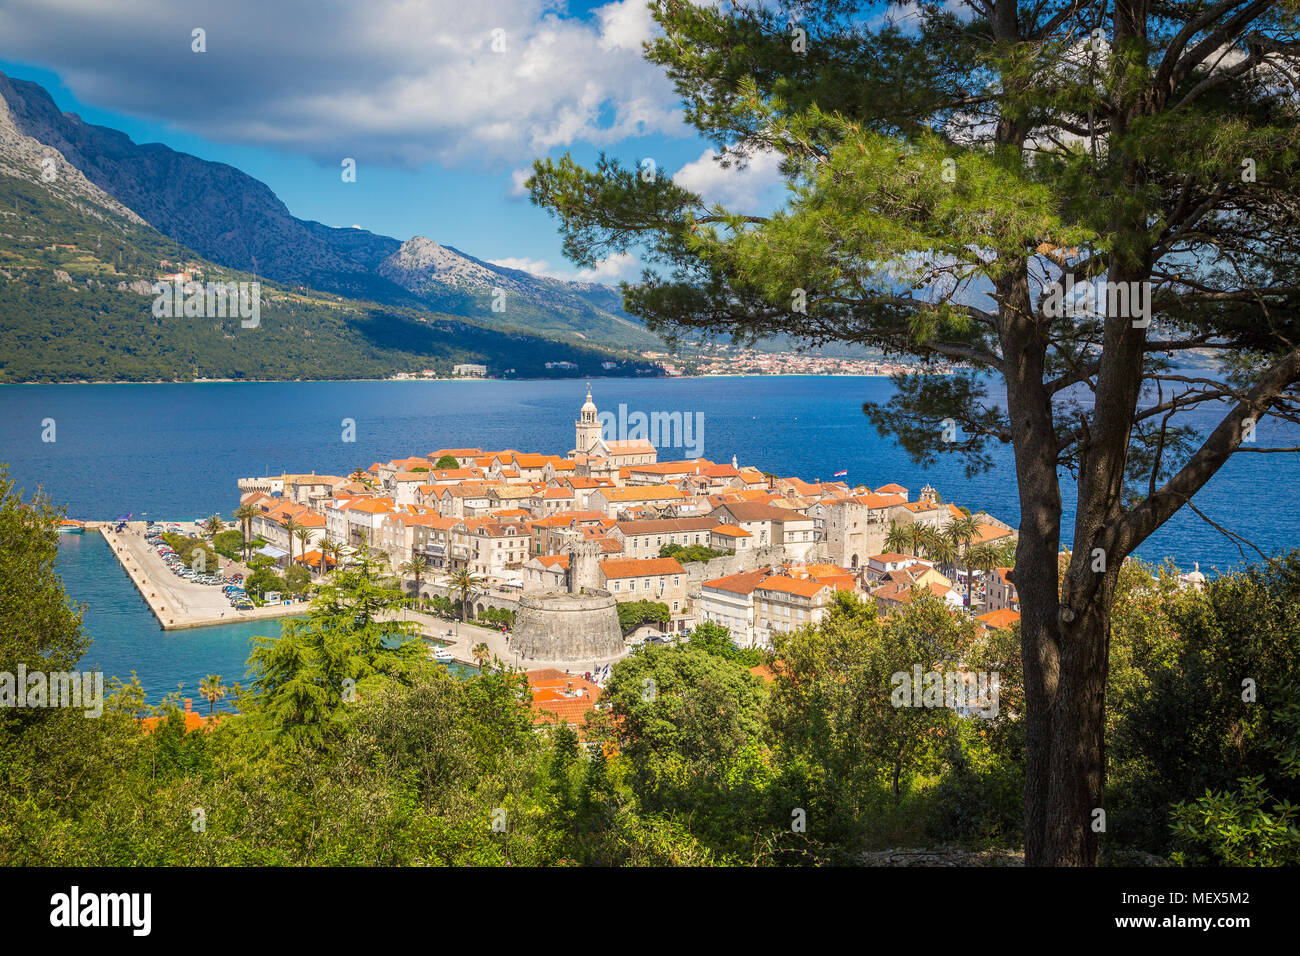 Beautiful view of the historic town of Korcula on a beautiful sunny day with blue sky and clouds in summer, Island of Korcula, Dalmatia, Croatia - Stock Image